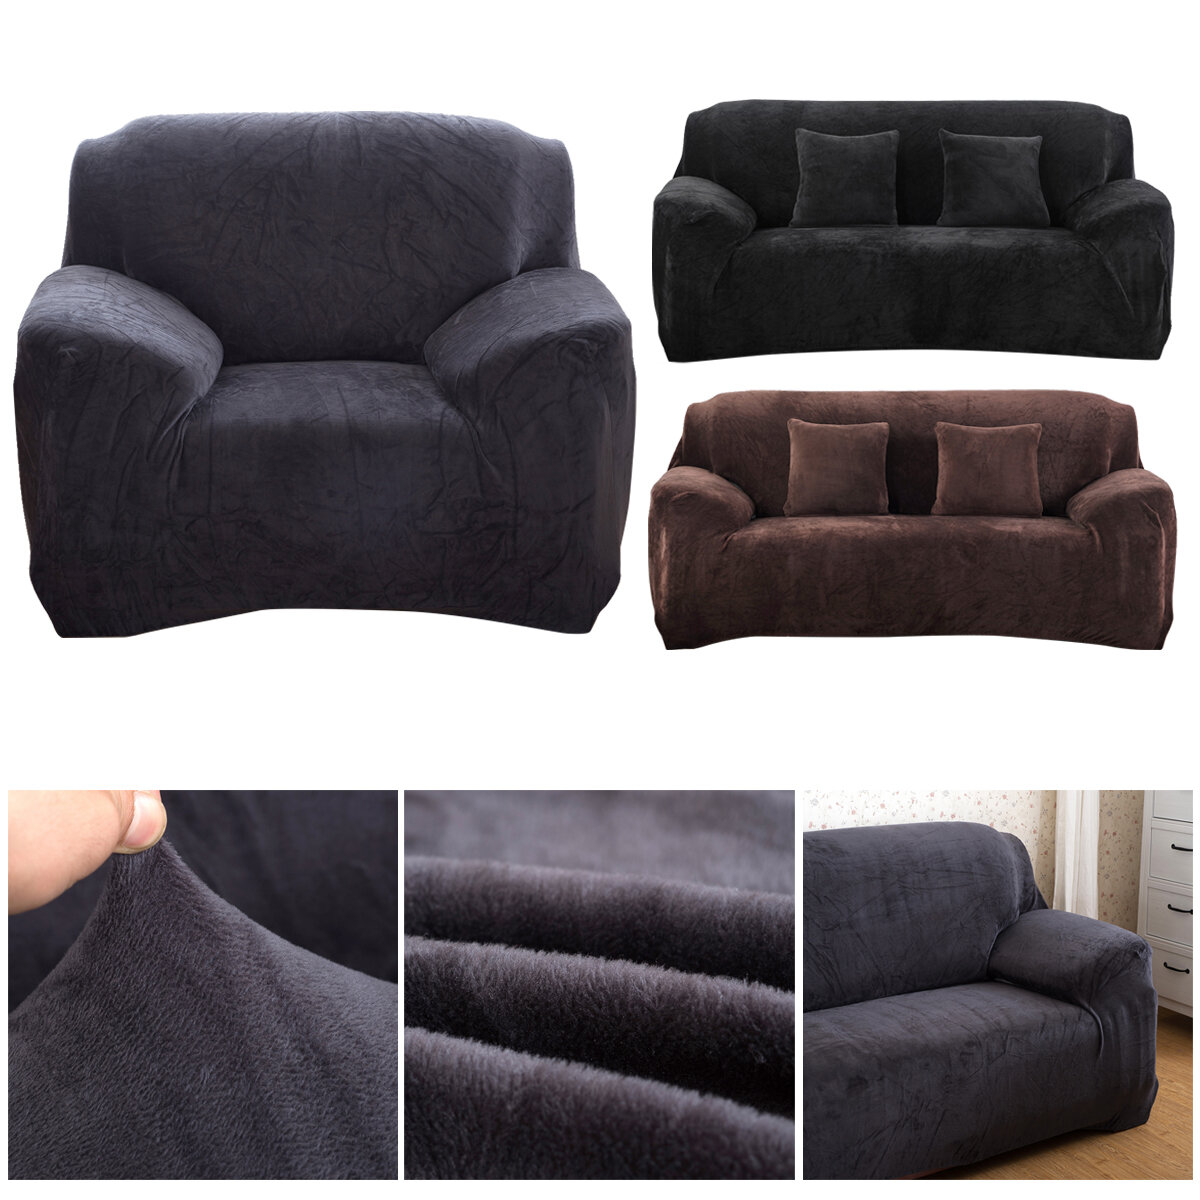 MEIGAR 1/2/3 Seats Elastic Stretch Sofa Armchair Cover Universal Couch Slipcover Plush Warm For Autumn Winter